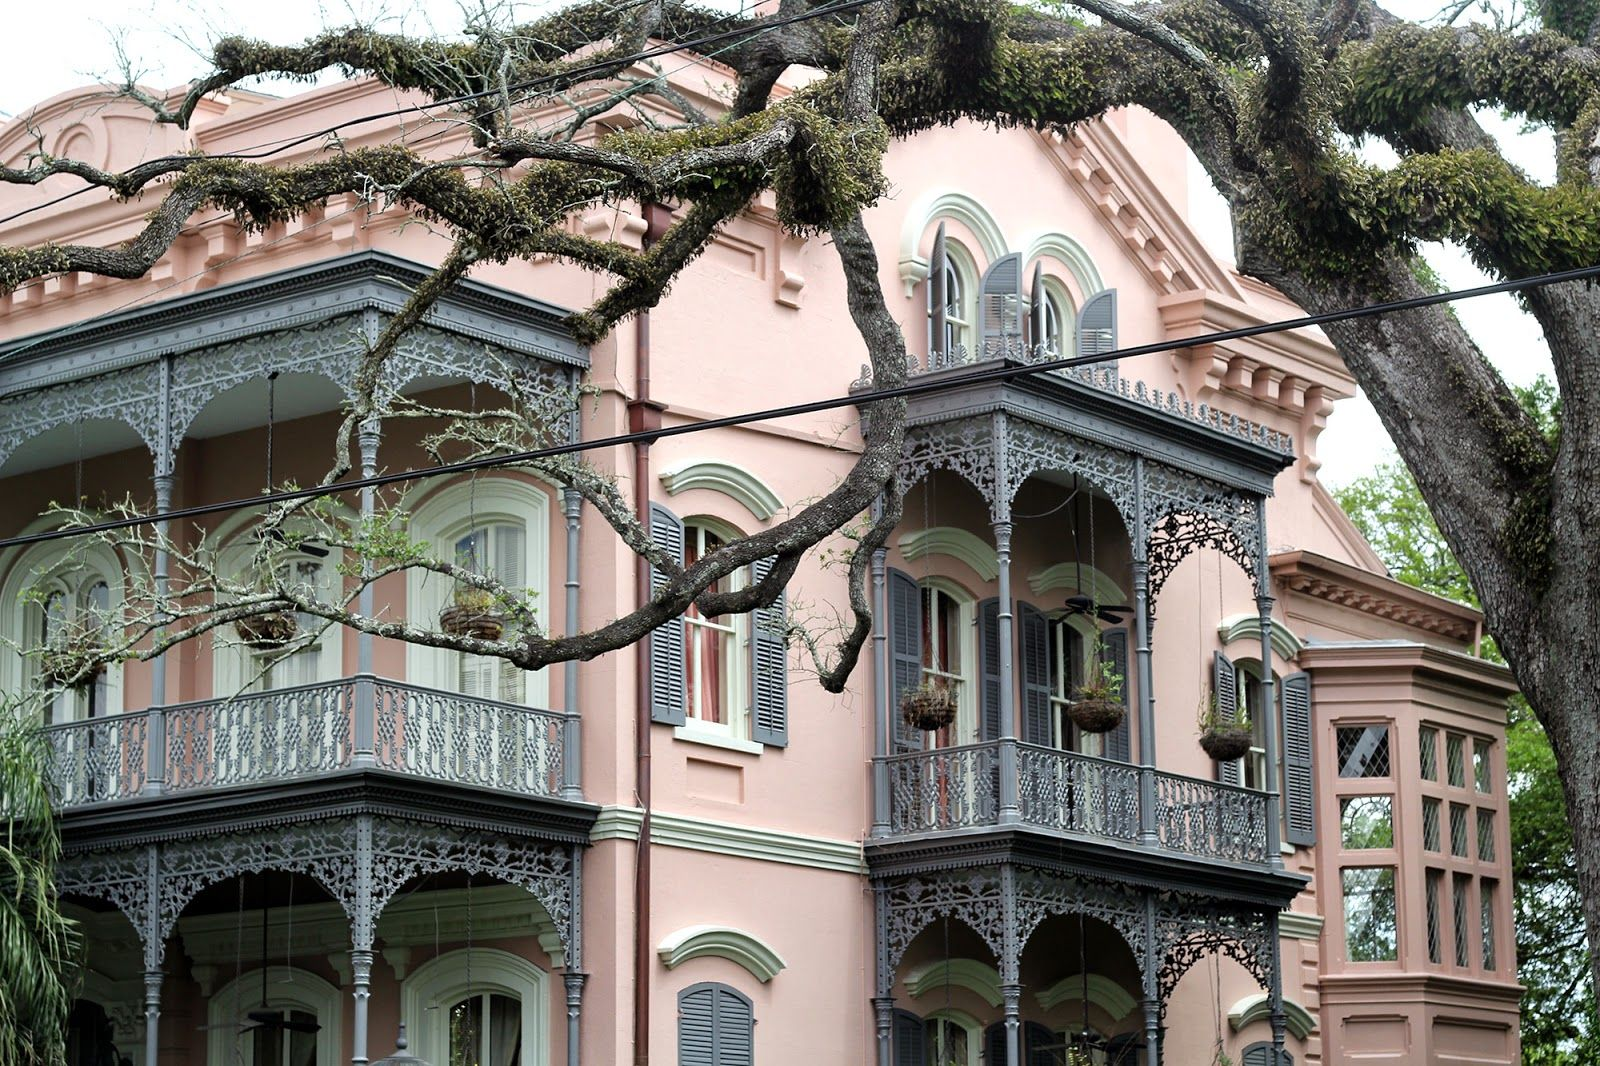 Joseph-Carrol House New Orleans: Part One - Frenchmen Street, The Garden District, The French Quarter and more